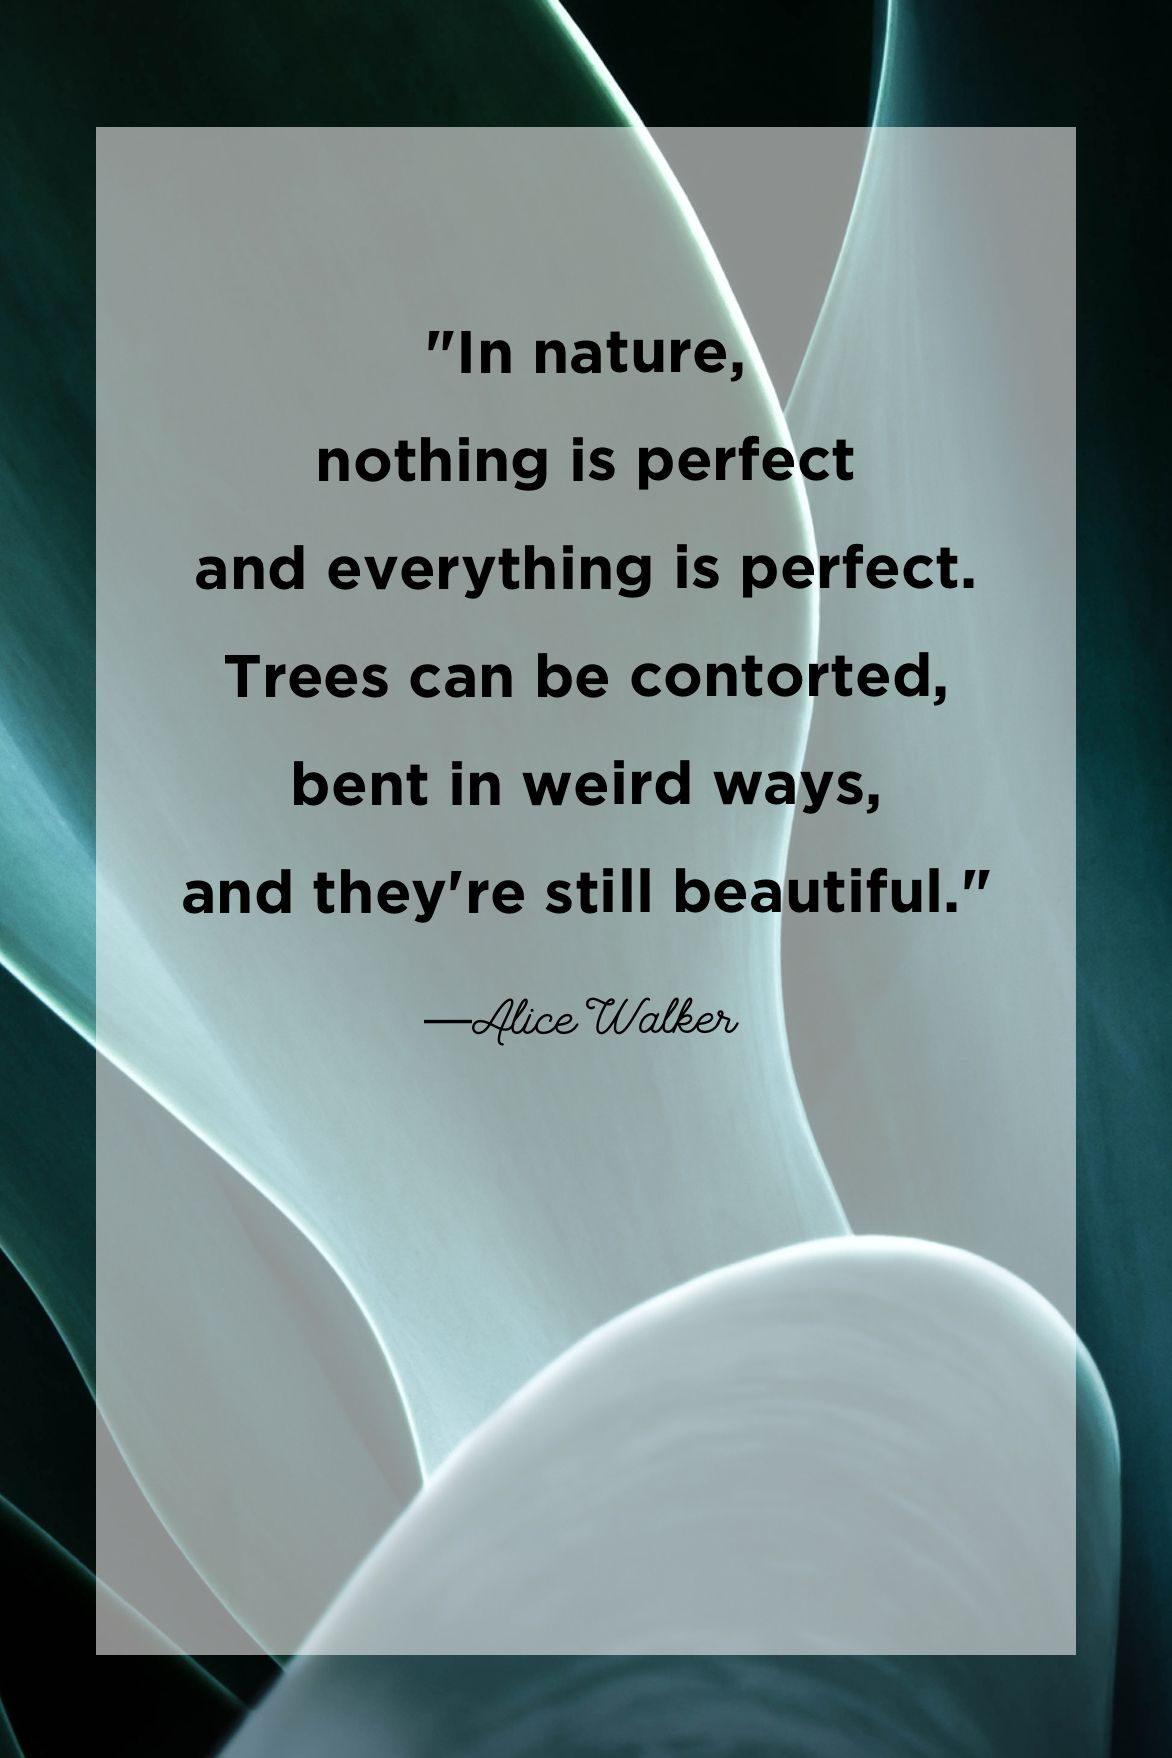 4 Best Nature Quotes - Inspirational Sayings About Nature